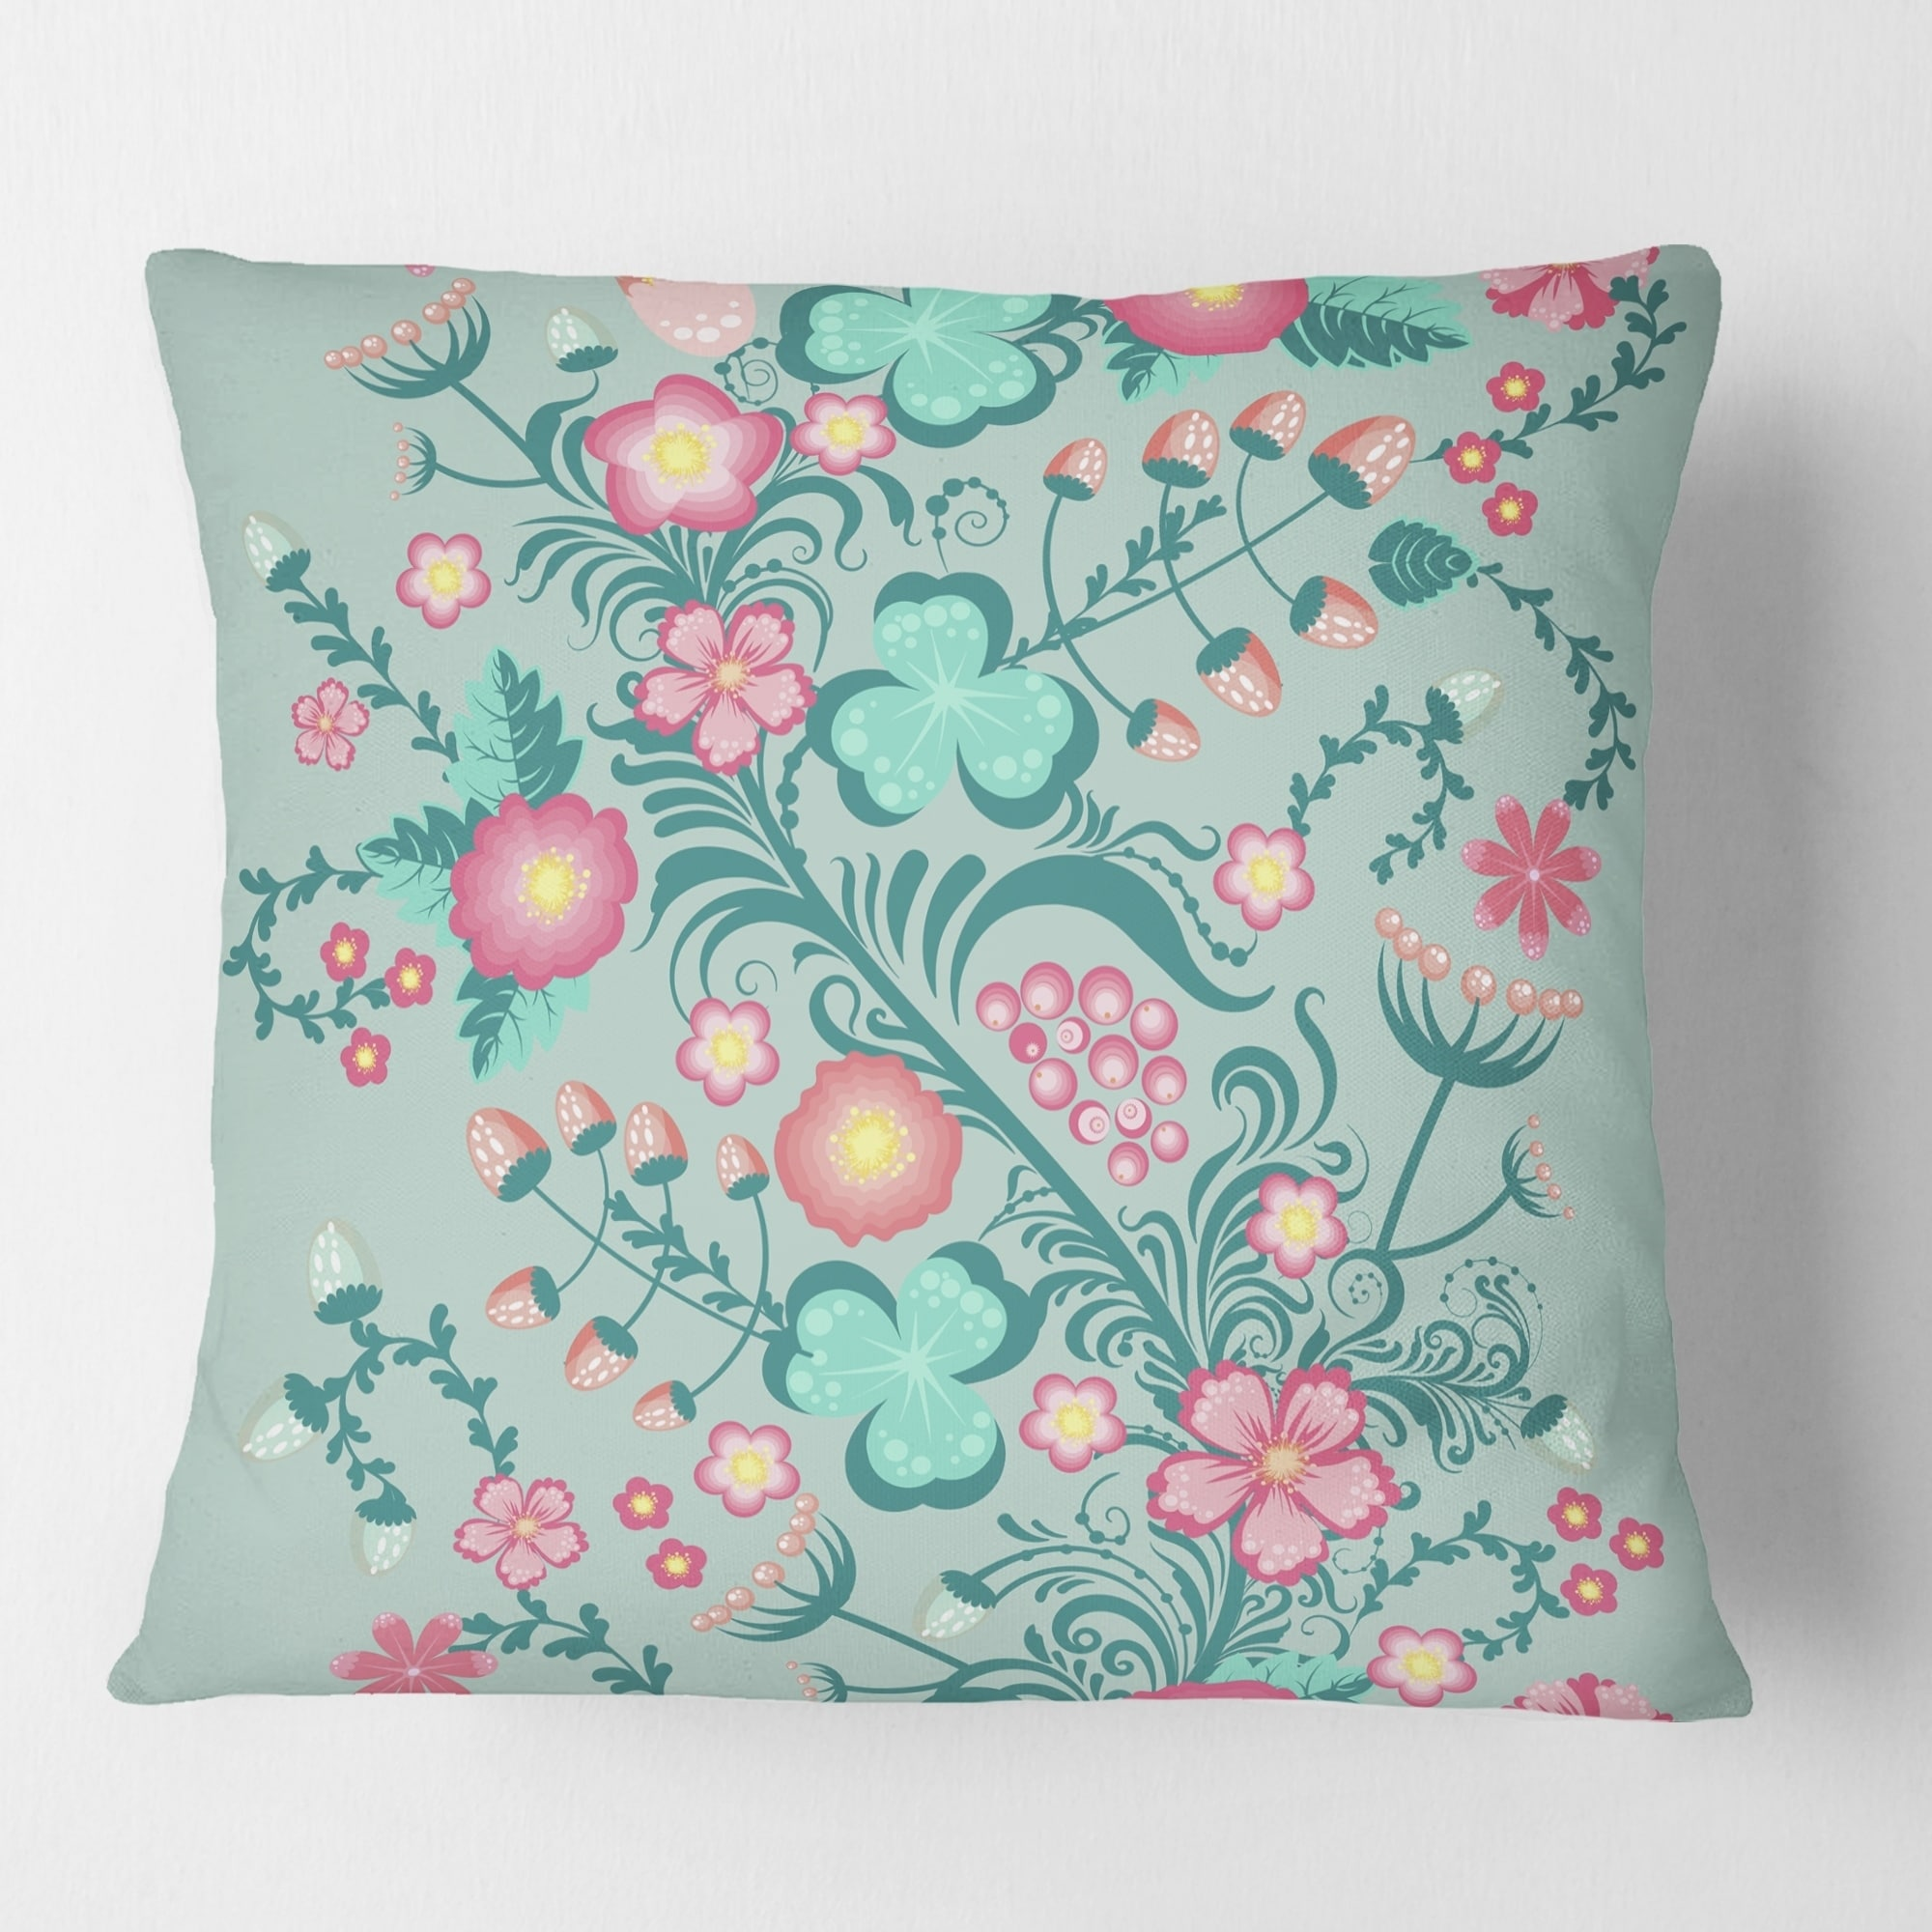 Designart Spring Floral Pattern In Soft Pastel Colors Mid Century Modern Throw Pillow Overstock 29064239